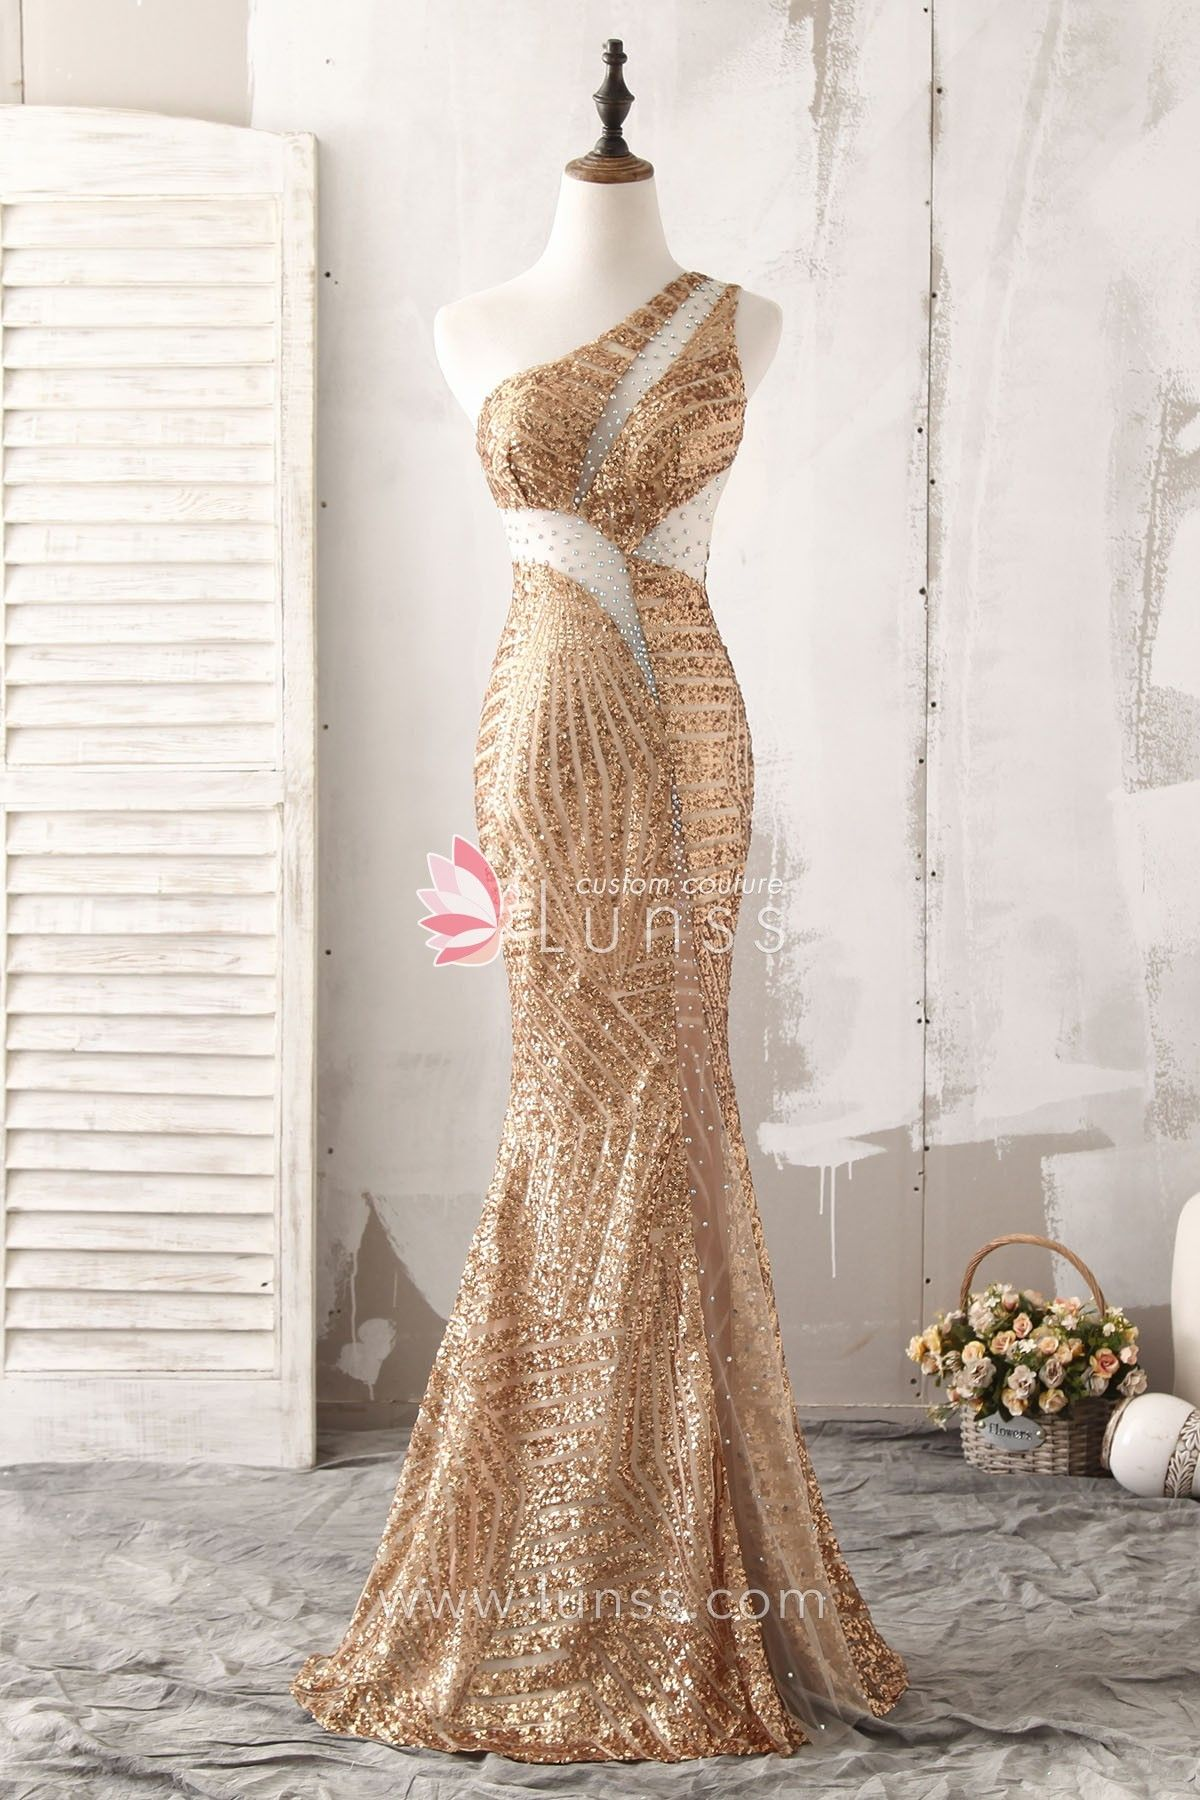 f0b8a7bc55e Sparking Gold Asymmetric One-shoulder Sequin Fit-and-flare Evening Prom  Dress - Lunss Couture